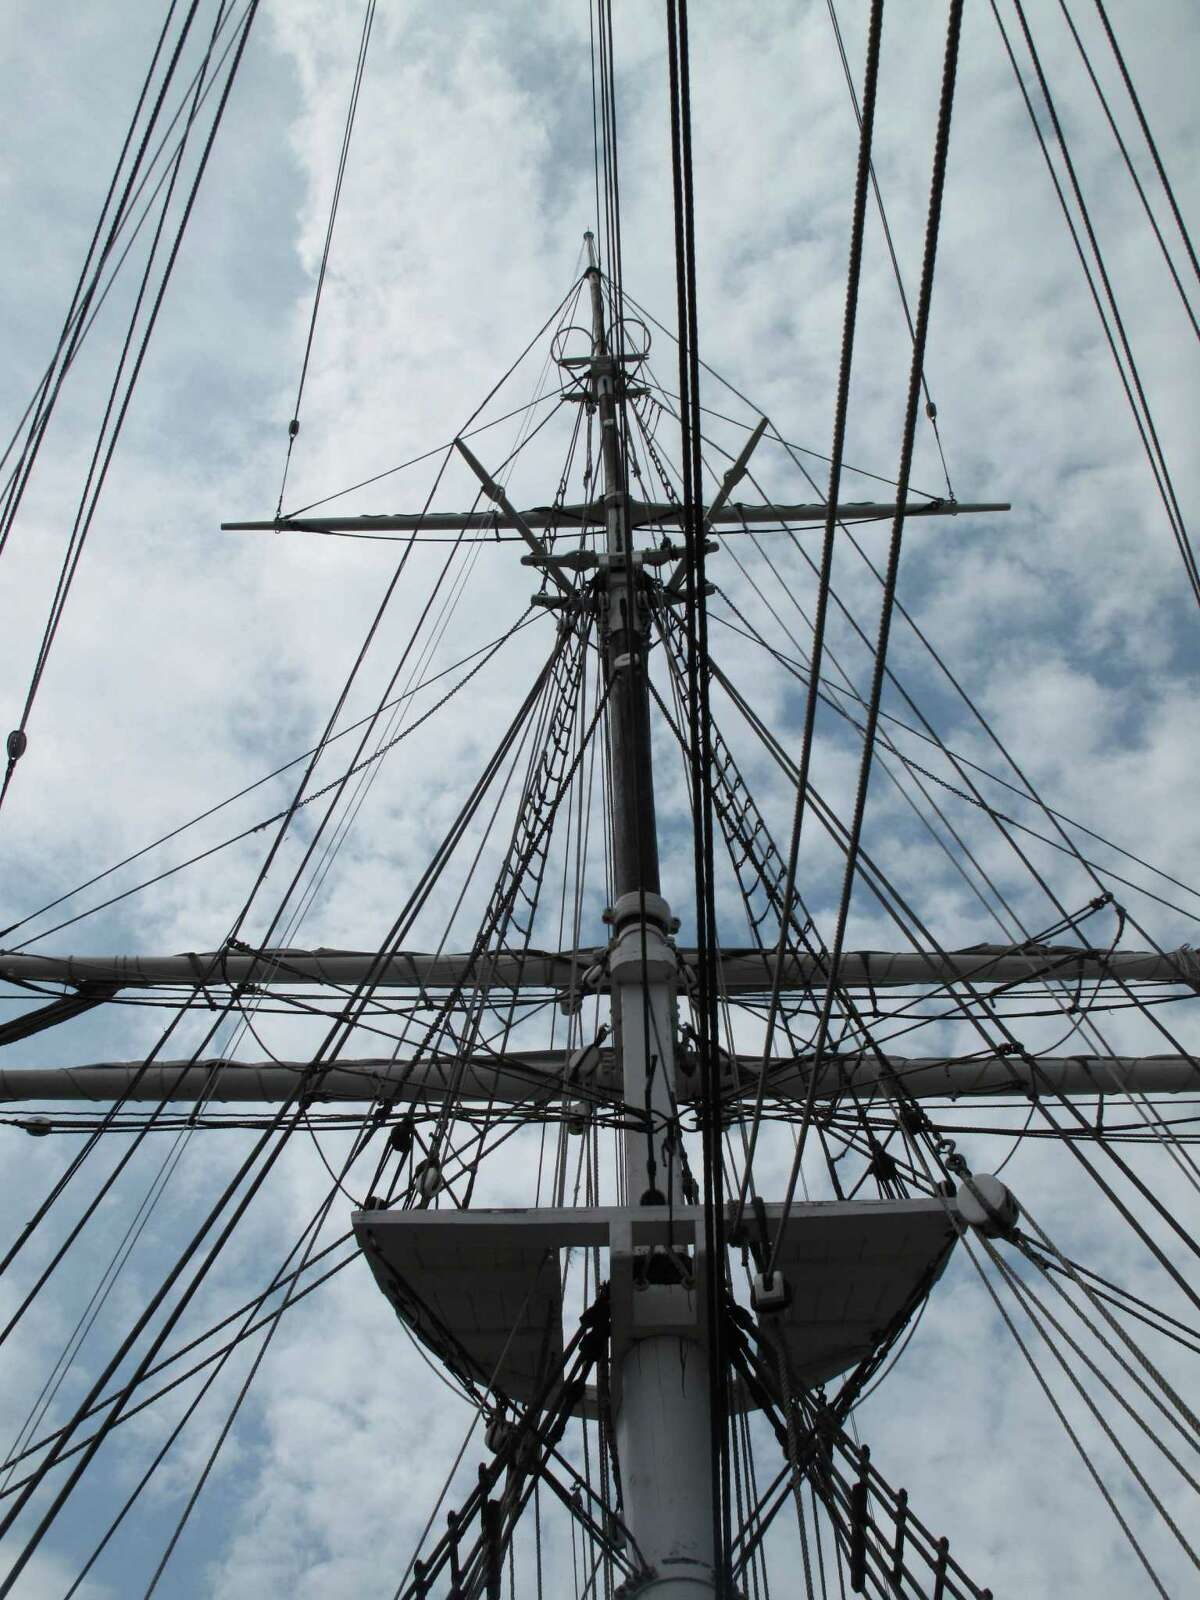 The rigging of a schooner at Mystic Seaport Museum in Connecticut.